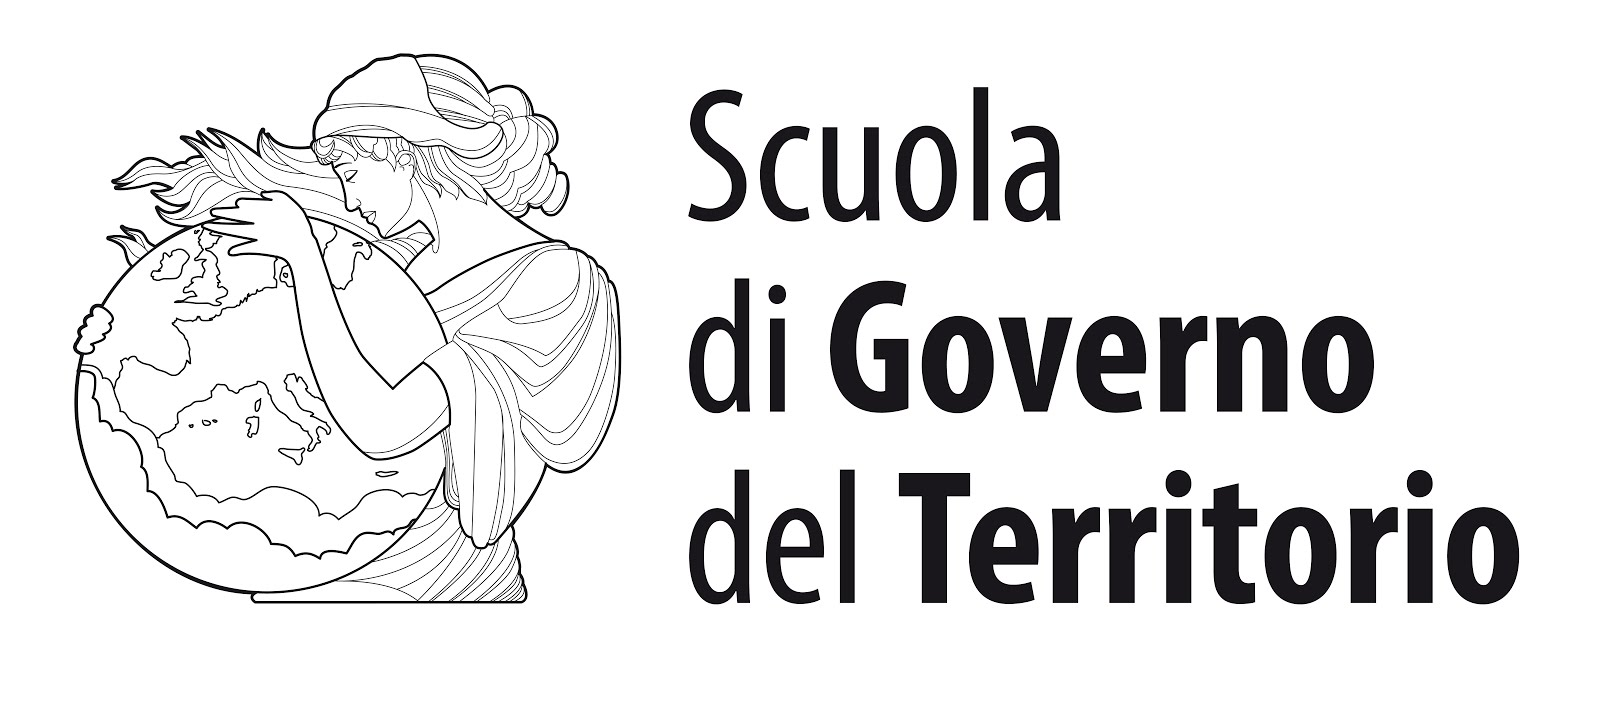 La Scuola di Governo del Territorio